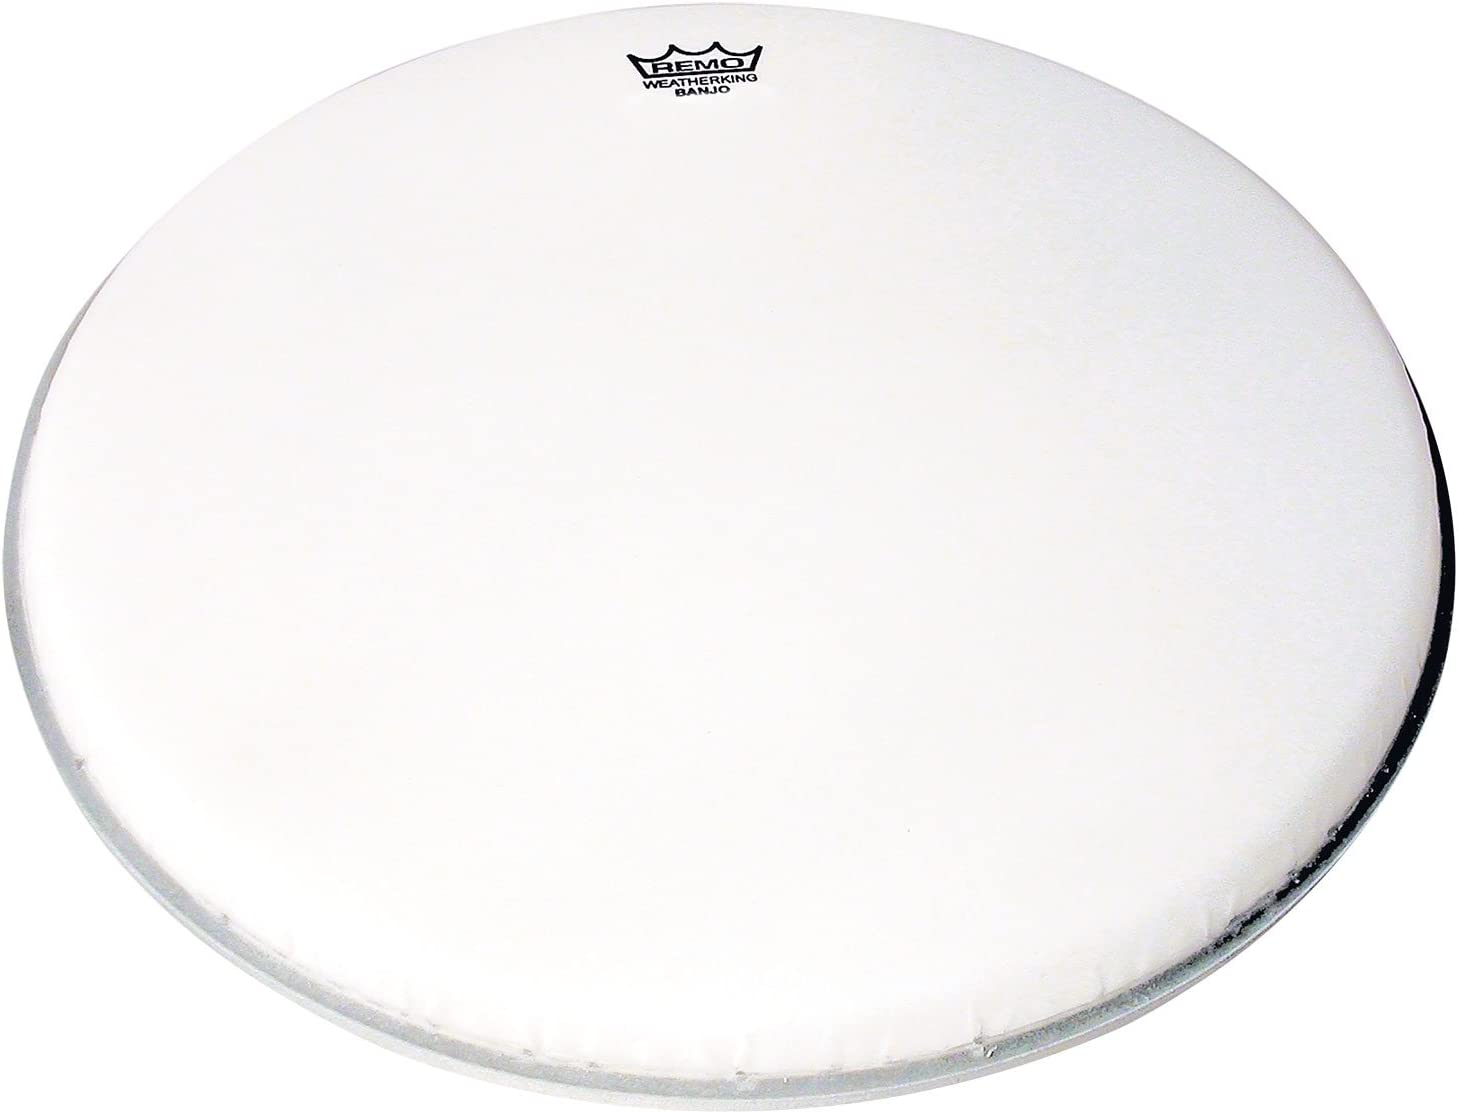 Low Collar 11-Inch Remo BJ1100-L1 Coated Topside Diplomat Banjo Head